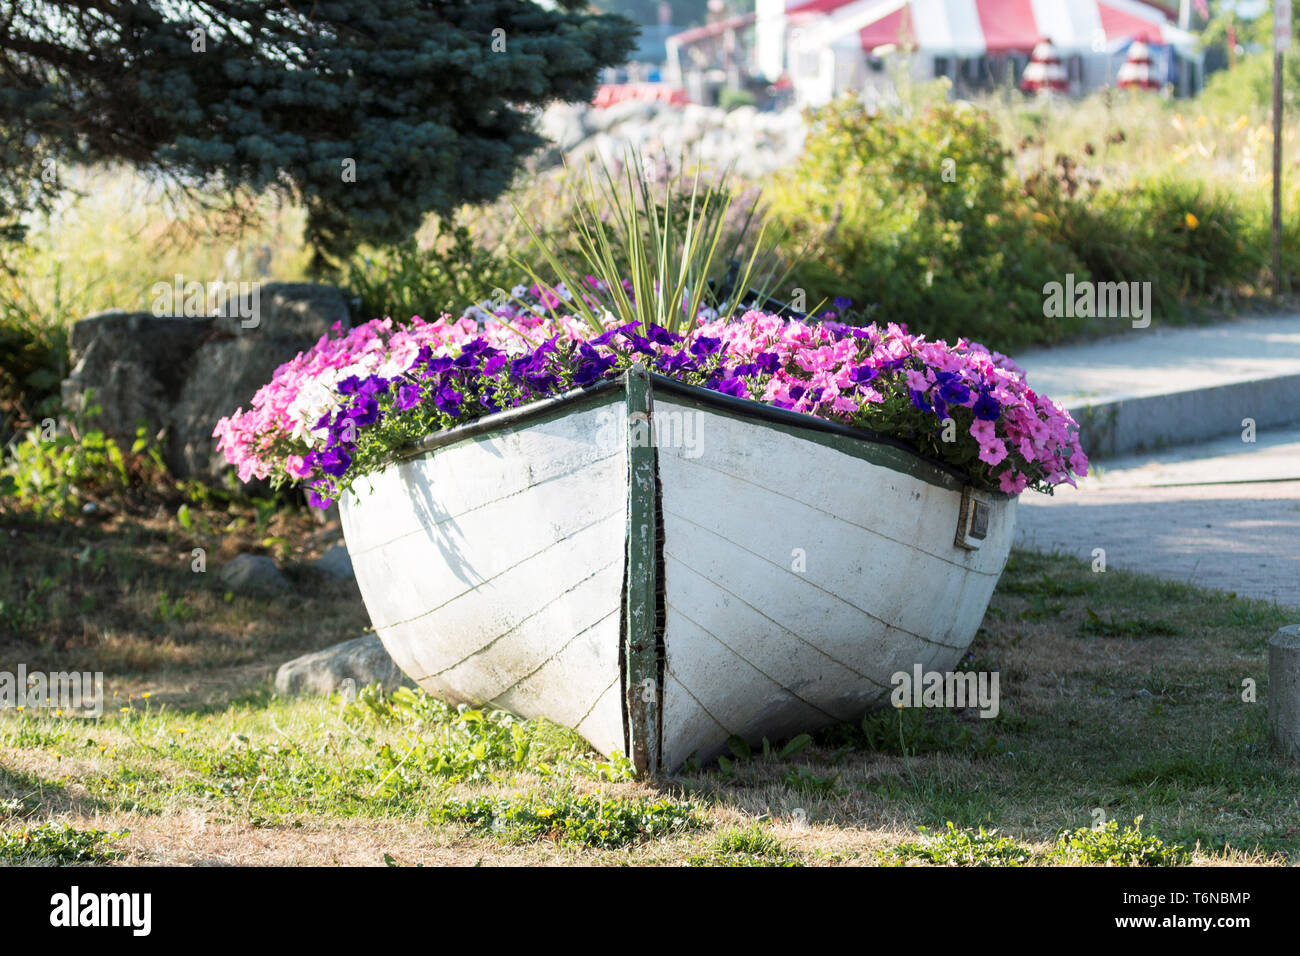 A green and white wooden boat is used to house a garden of flowers on the side of the road in Lincolnville Beach Maine. Stock Photo